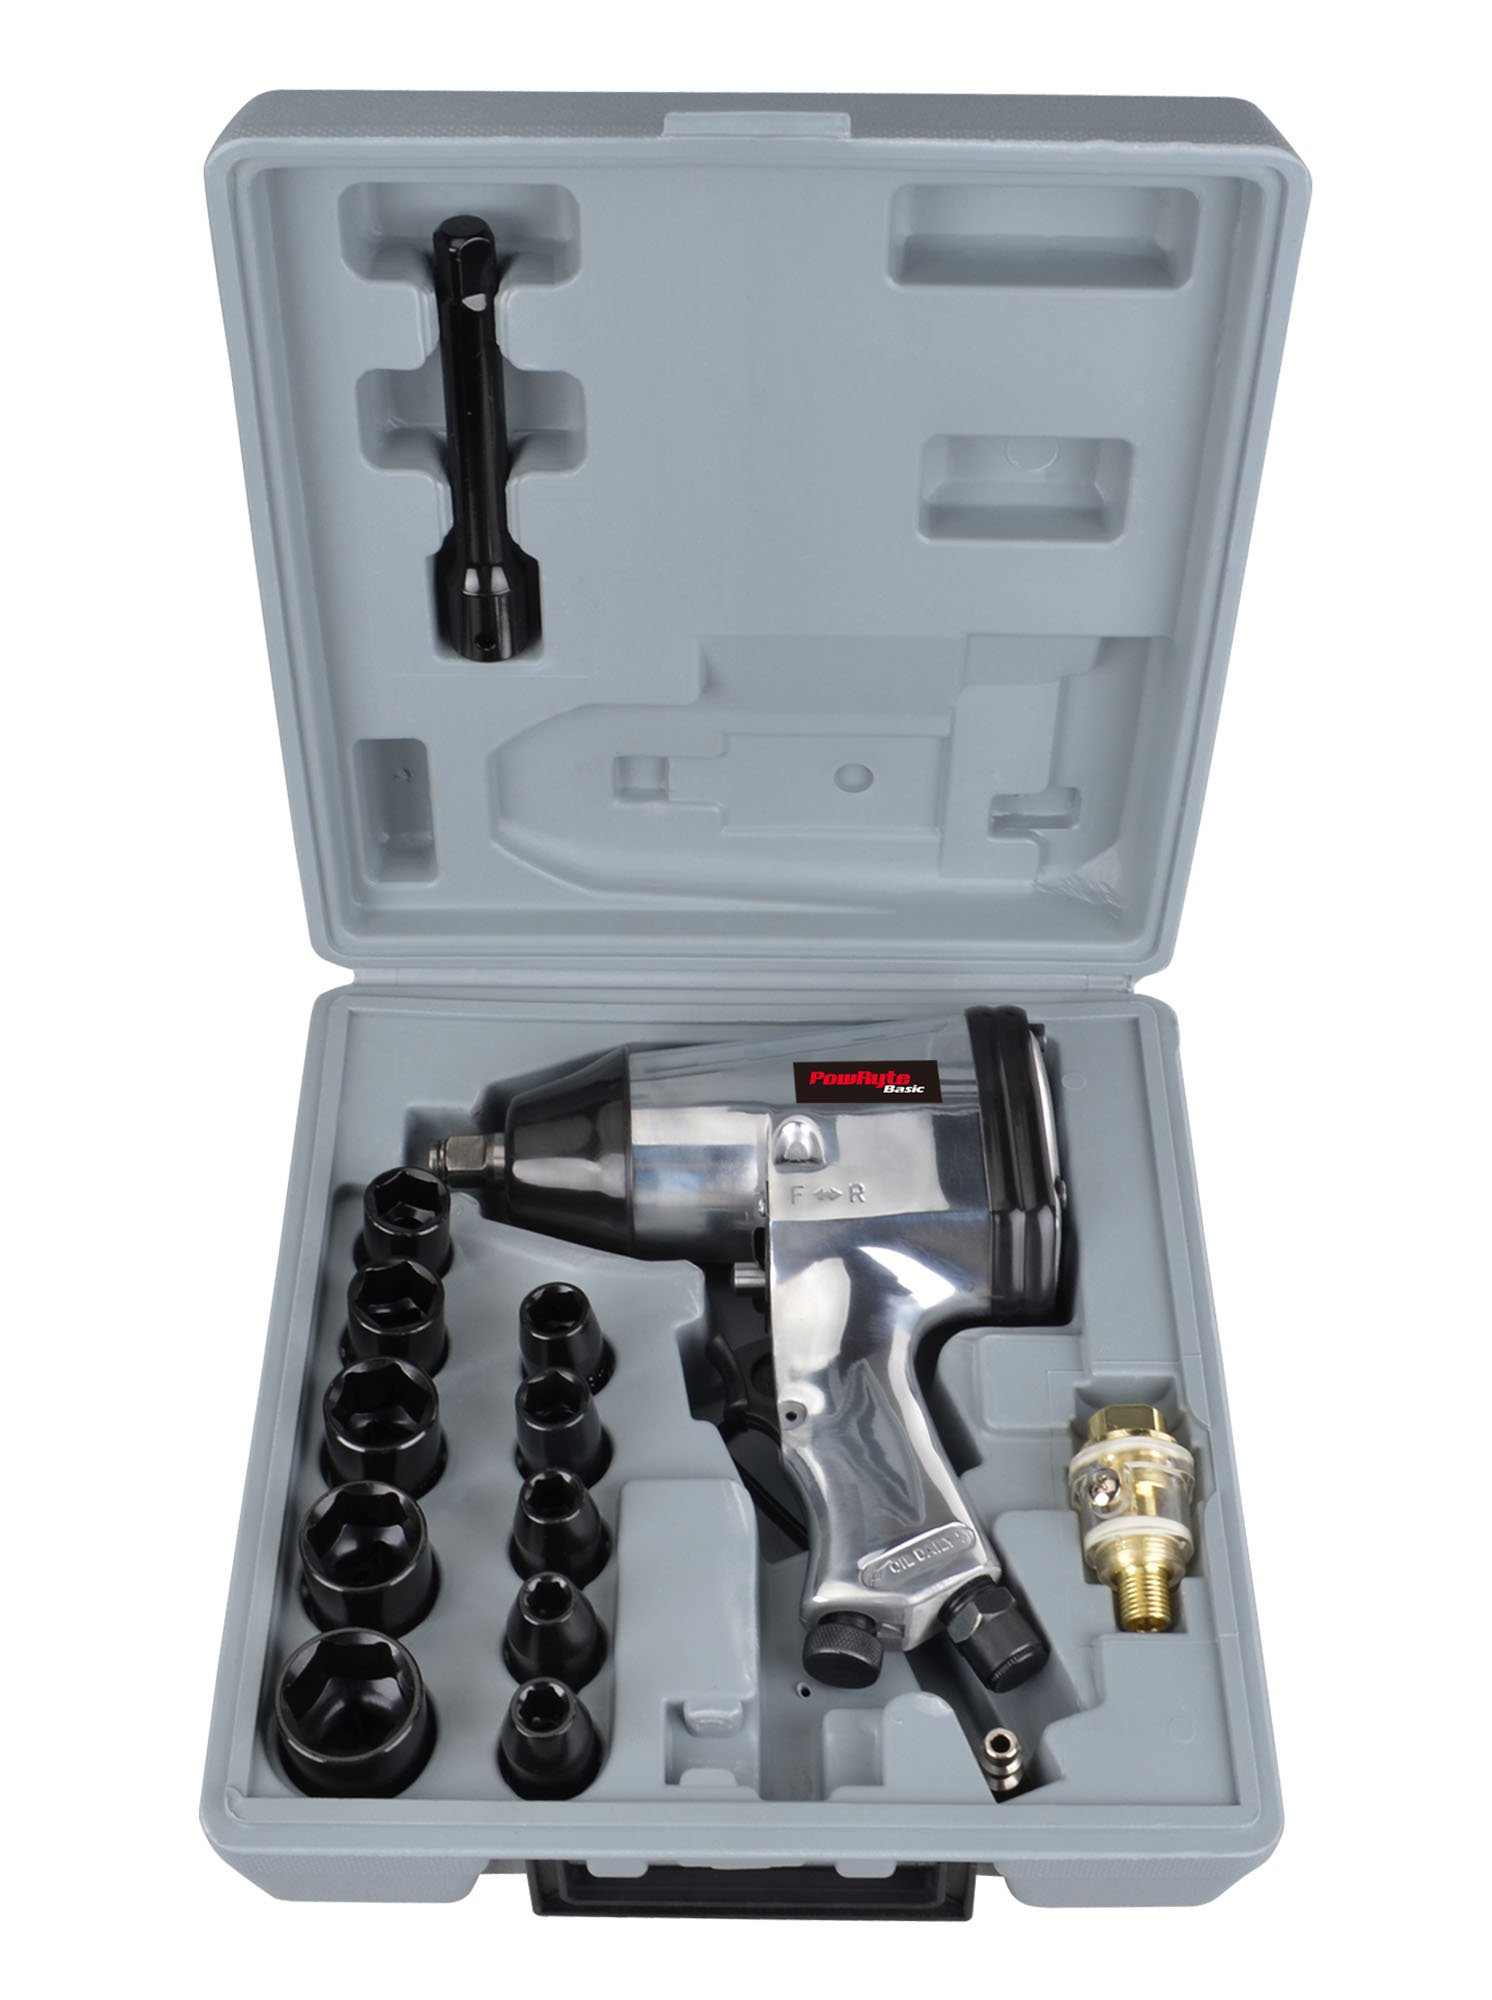 PowRyte 17pcs 1/2-Inch Air Impact Wrench Set with Impact Sockets and Blow Mold Case by PowRyte (Image #2)